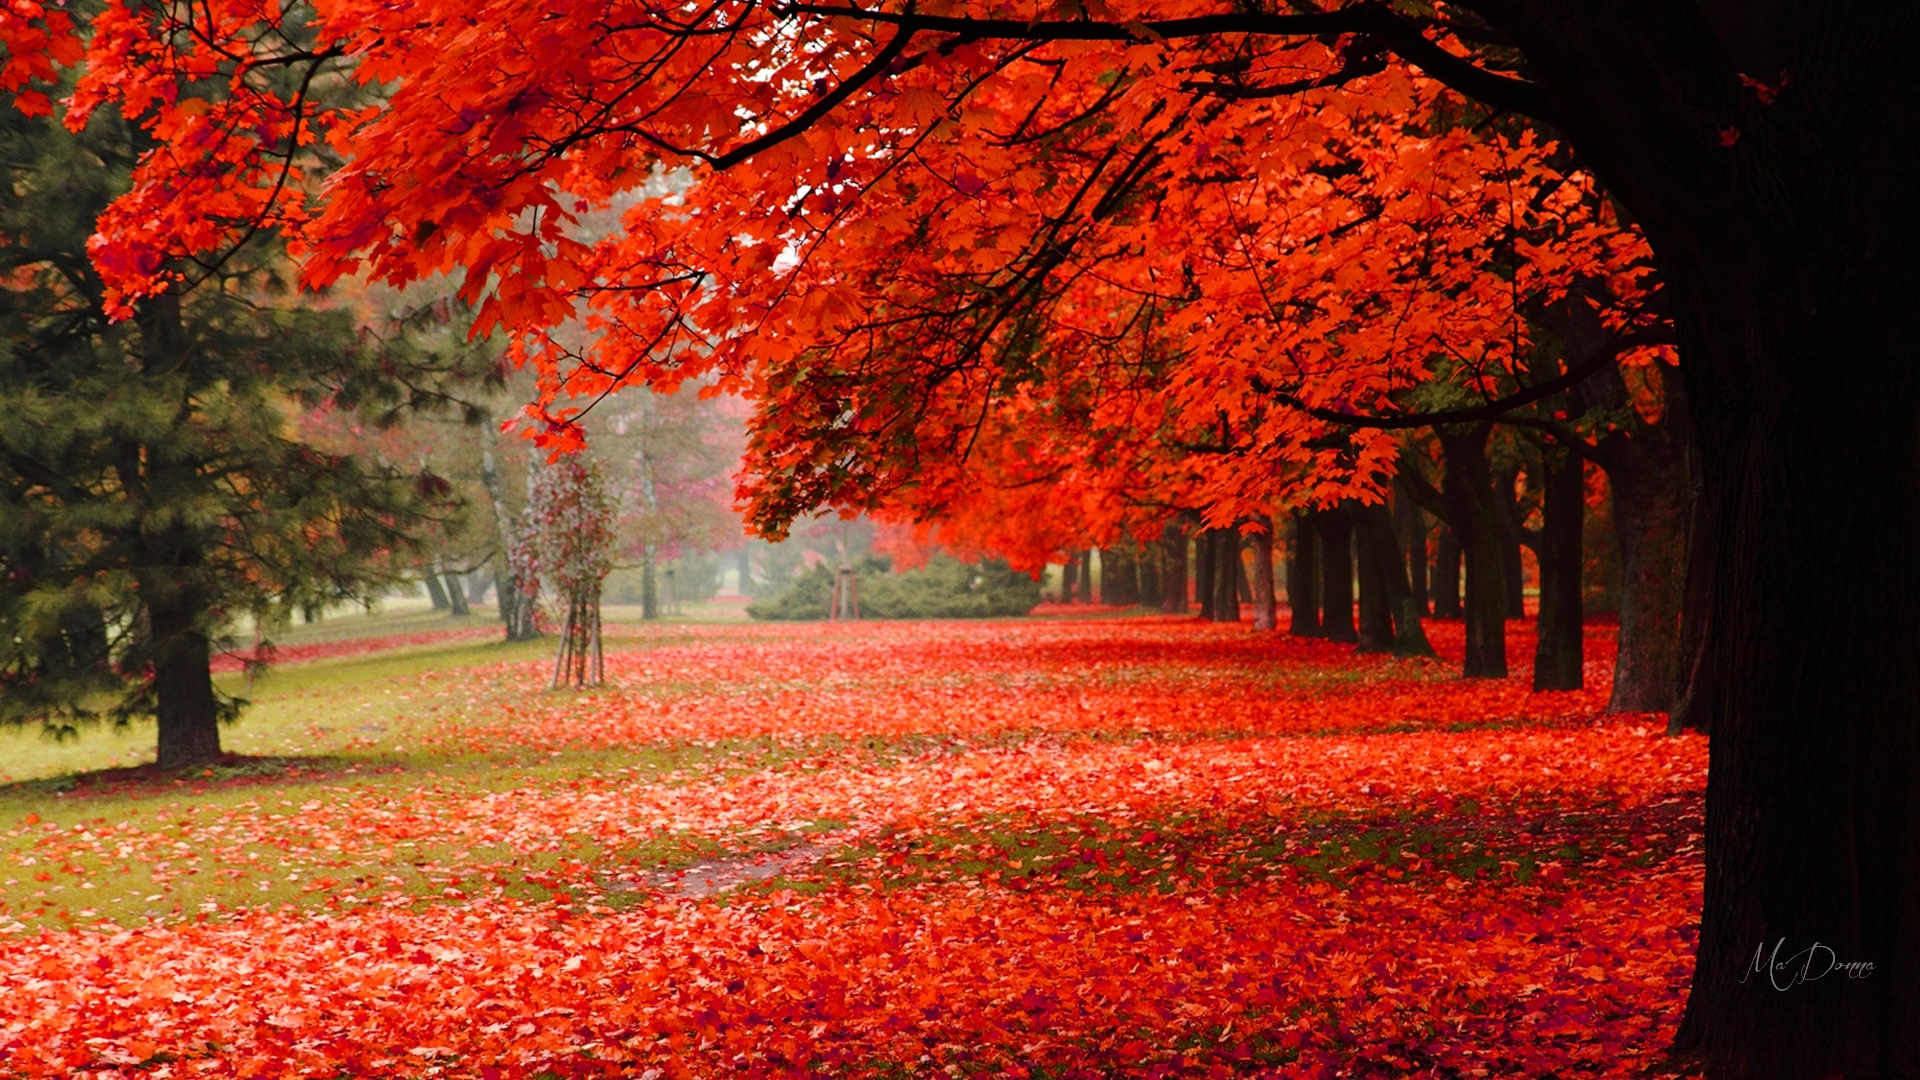 Fall Foliage Iphone Wallpaper Tree In Autumn Park Hd Wallpaper Background Image